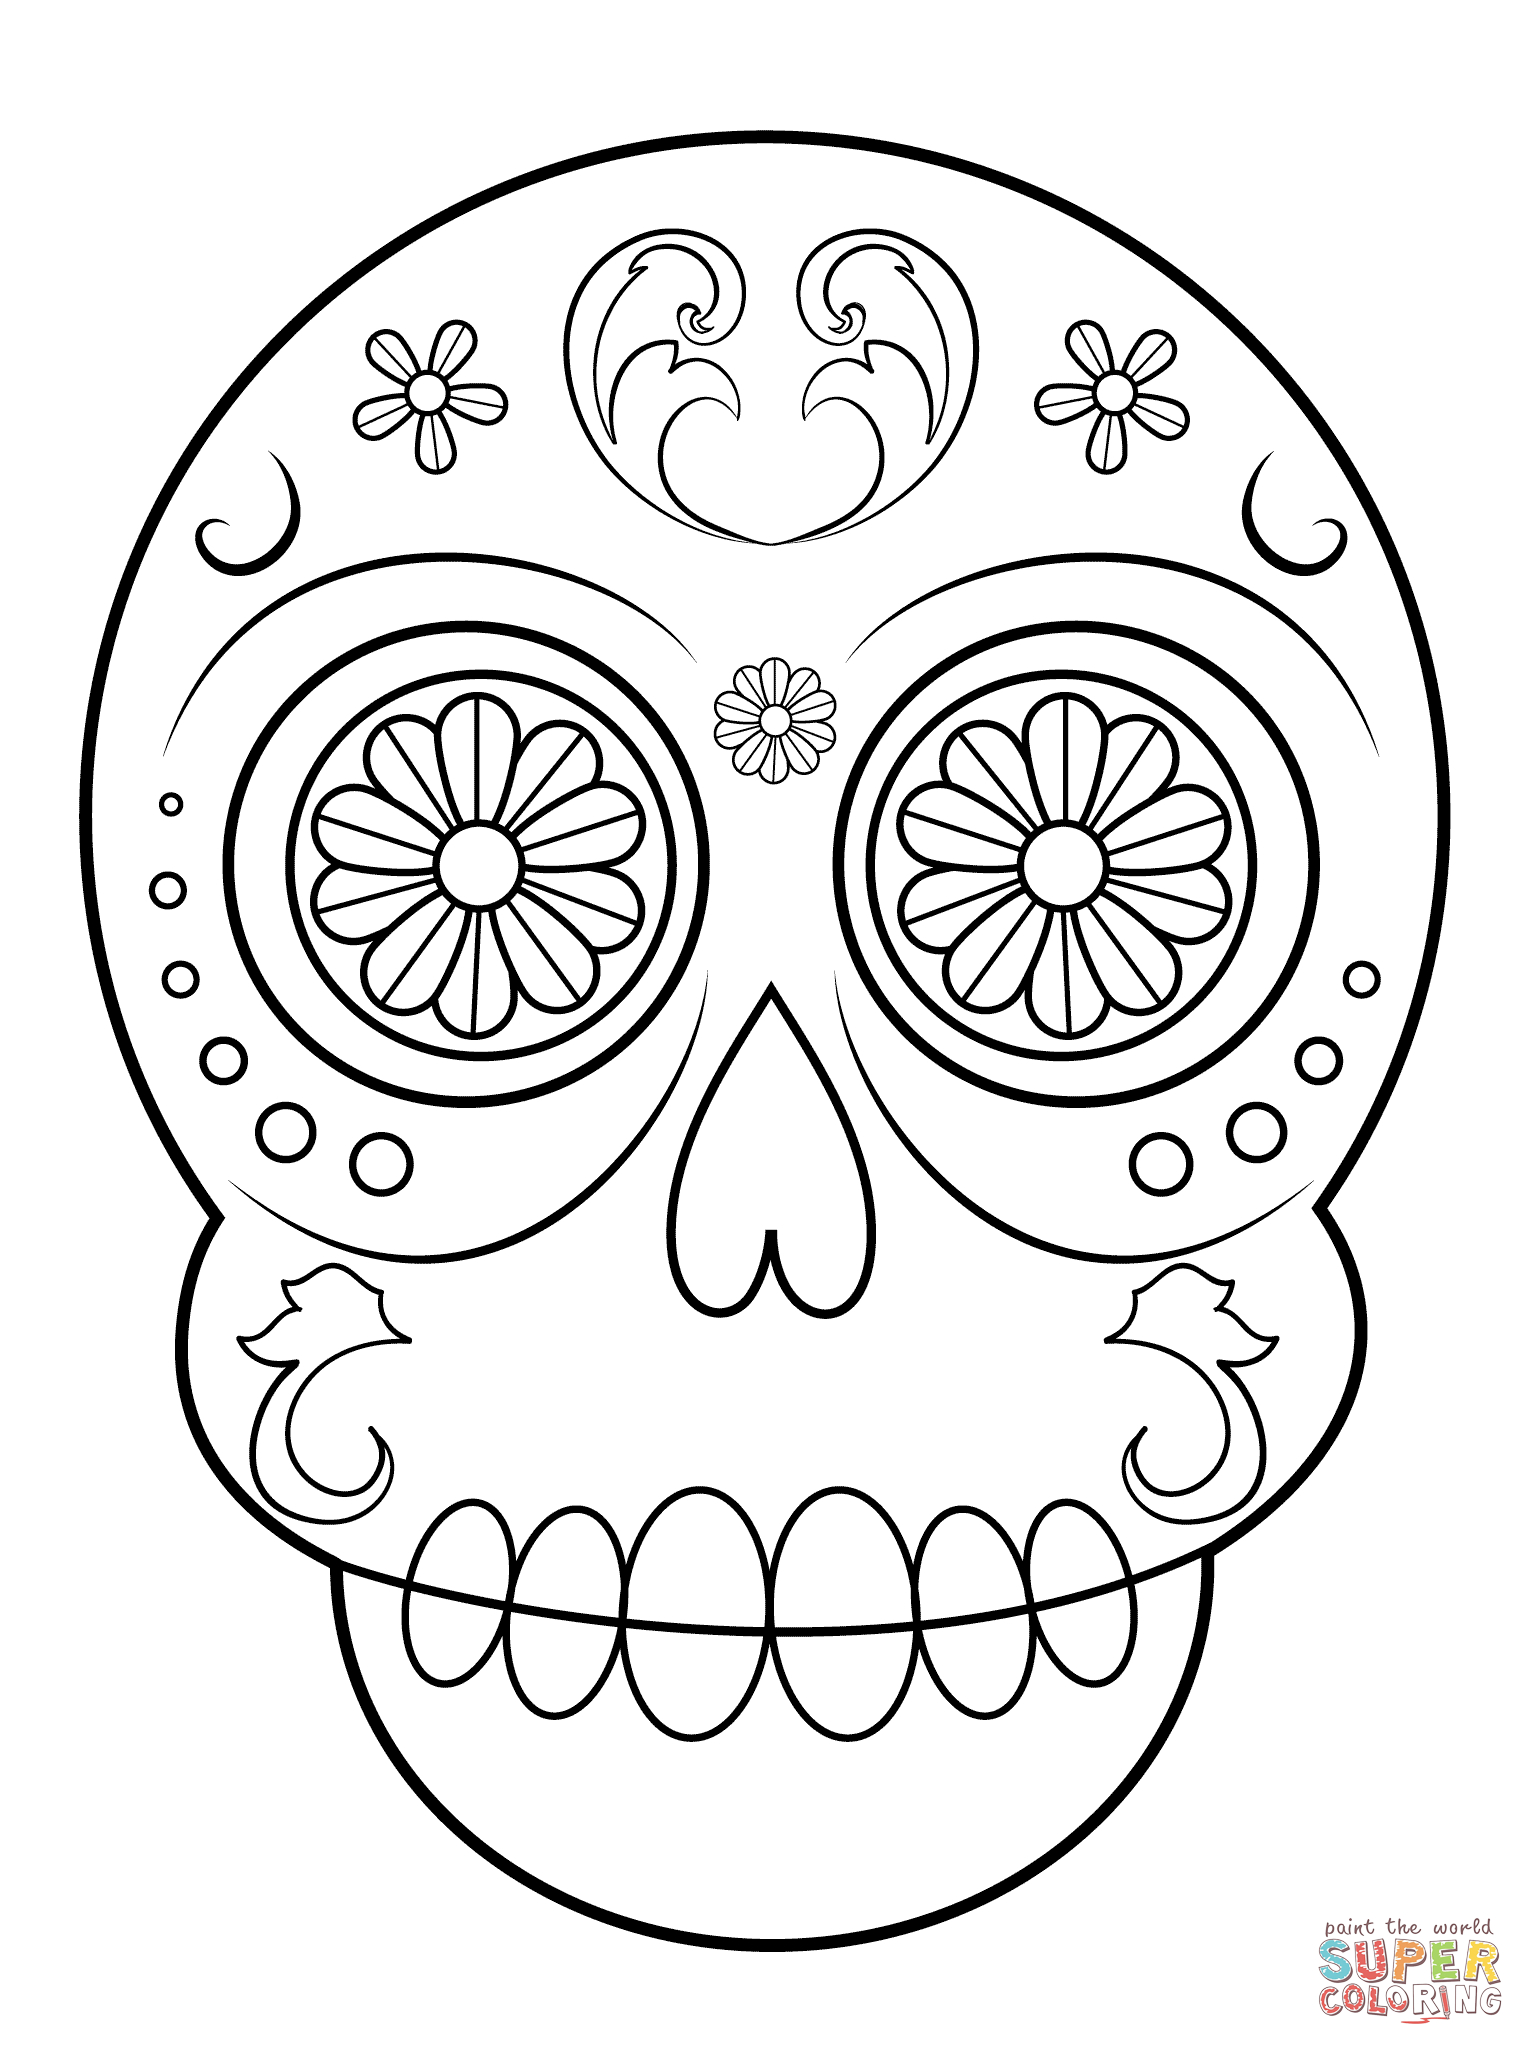 Simple Sugar Skull Coloring Page | Free Printable Coloring Pages - Free Printable Sugar Skull Coloring Pages